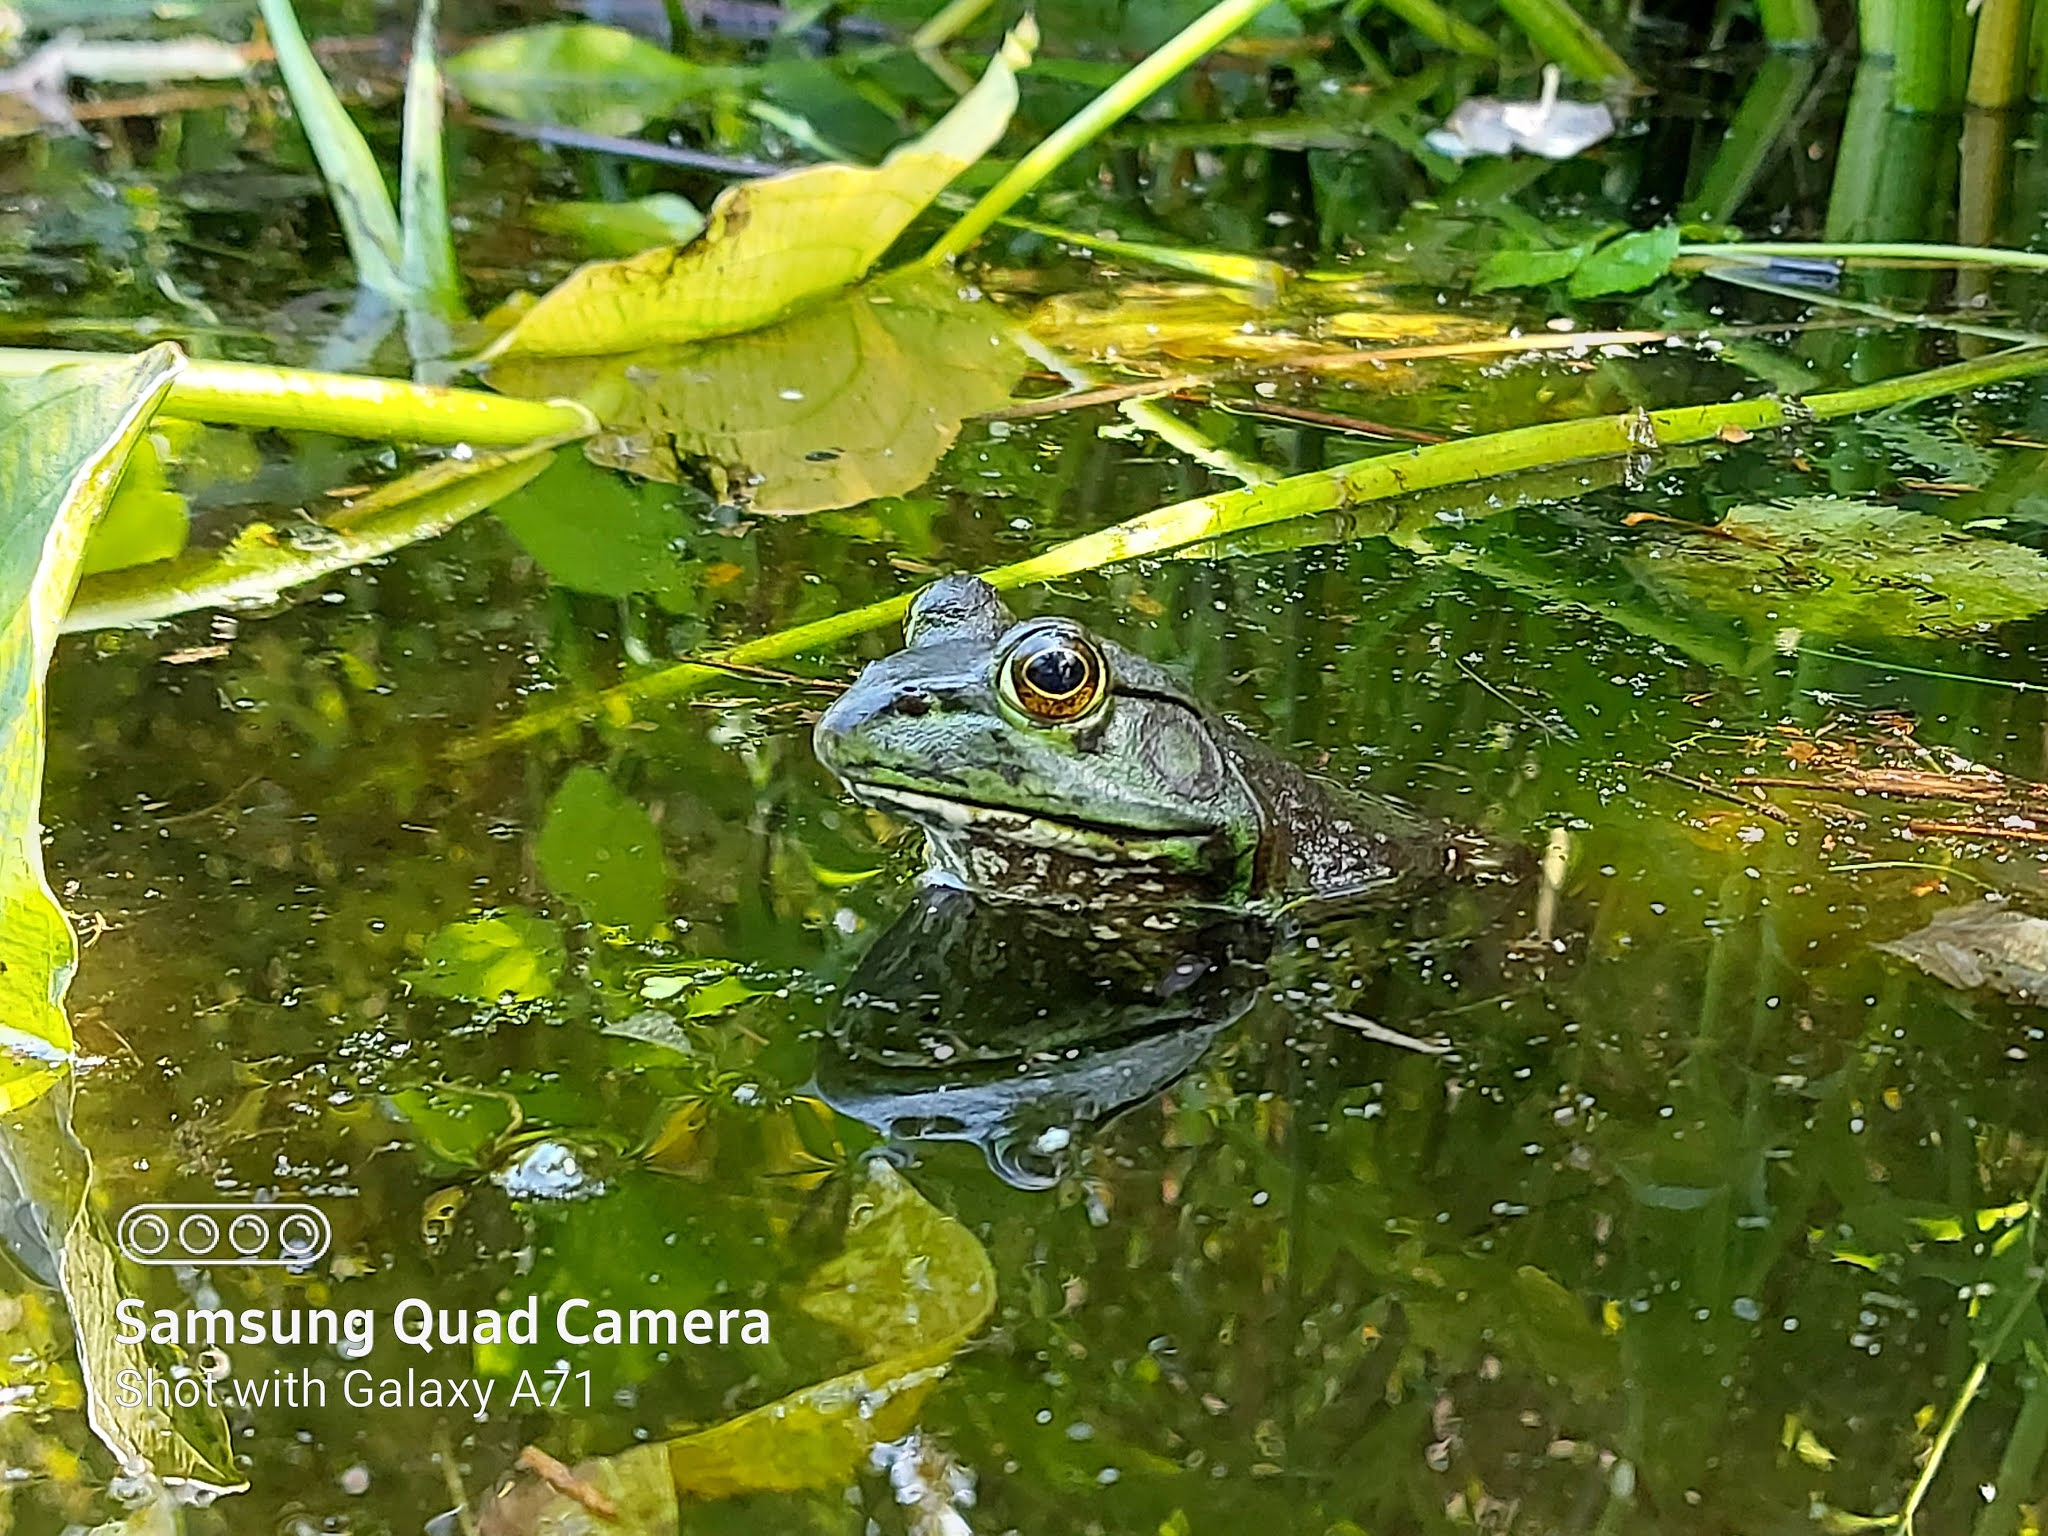 A wildlife green frog